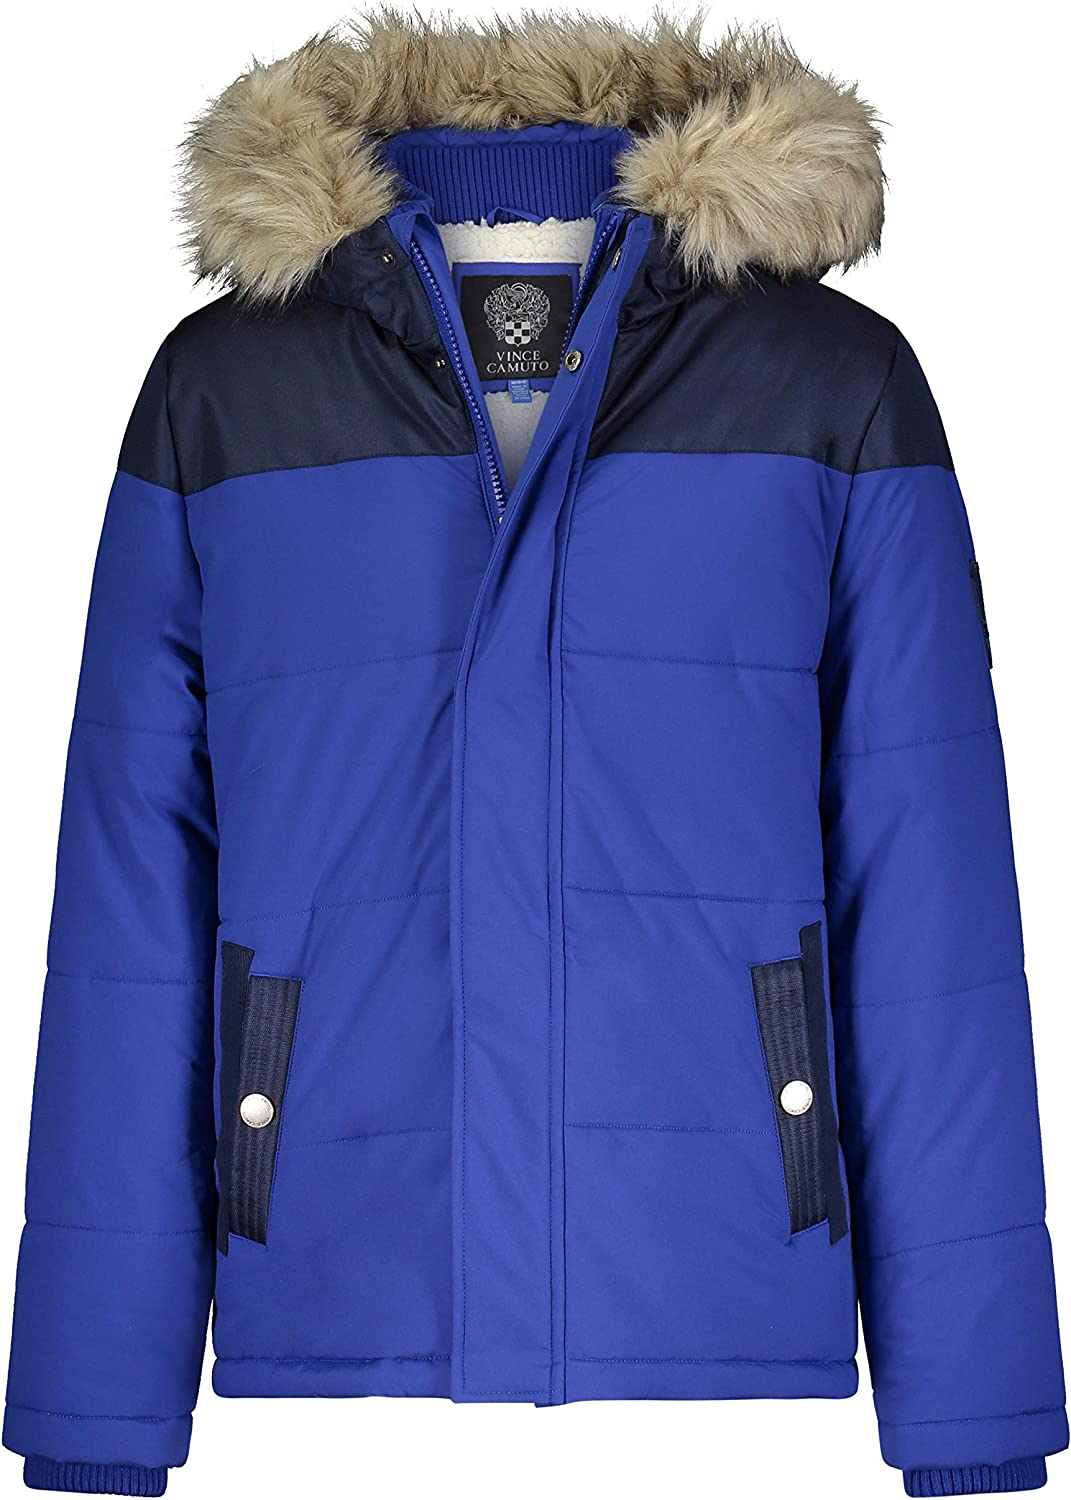 Vince Camuto Boys Warm Hooded Puffer Jacket Coat